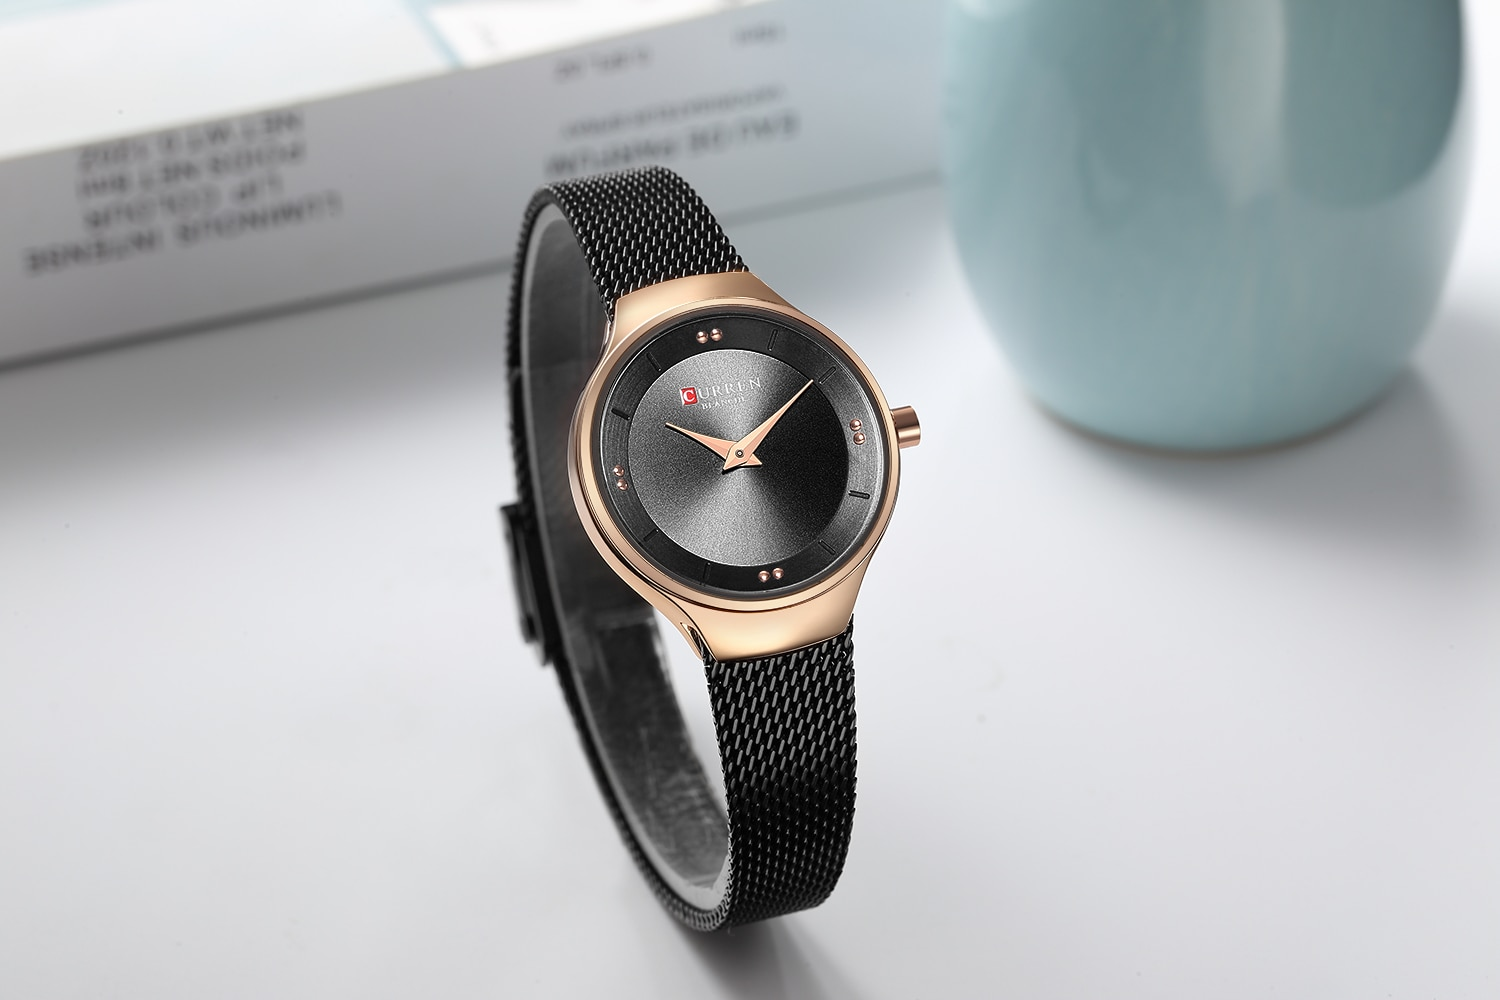 CURREN Top Brand Women's Watches Creative Design Wristwatch Exquisite Waterproof Stainless Steel Lady Watch Gift Zegarki Damskie enlarge